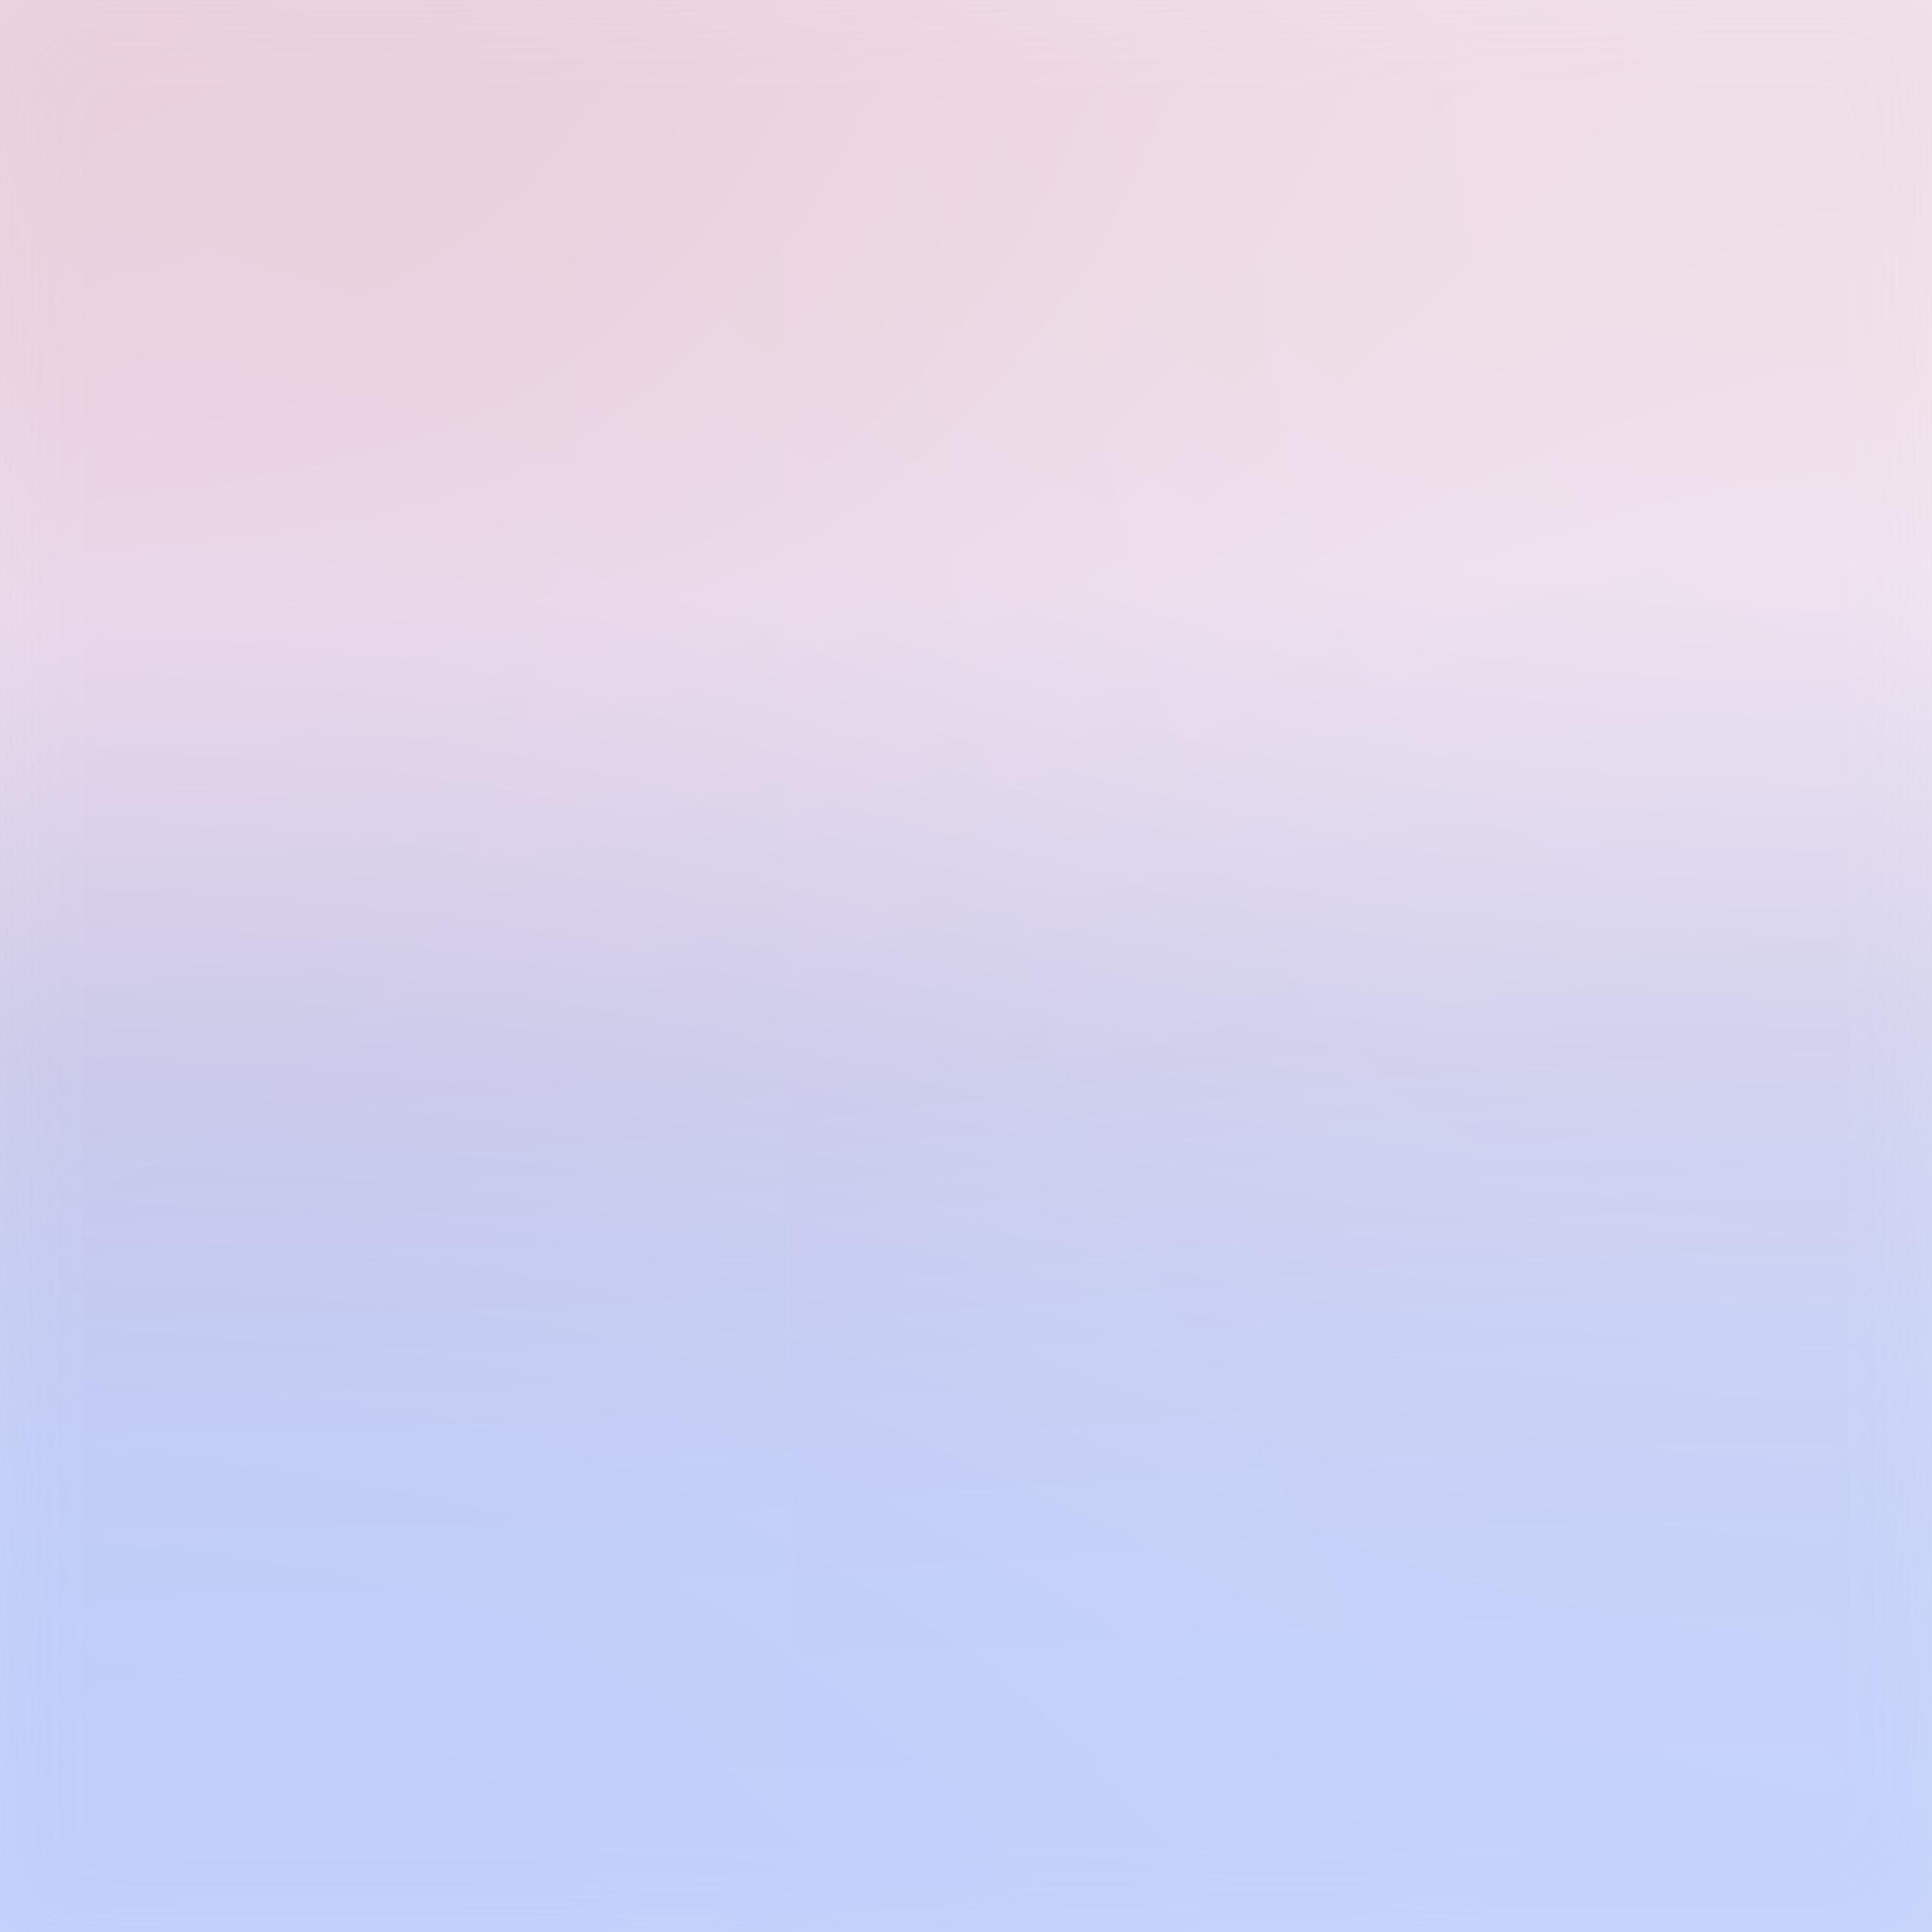 Aesthetic Pastel Wallpapers Wallpaper Cave